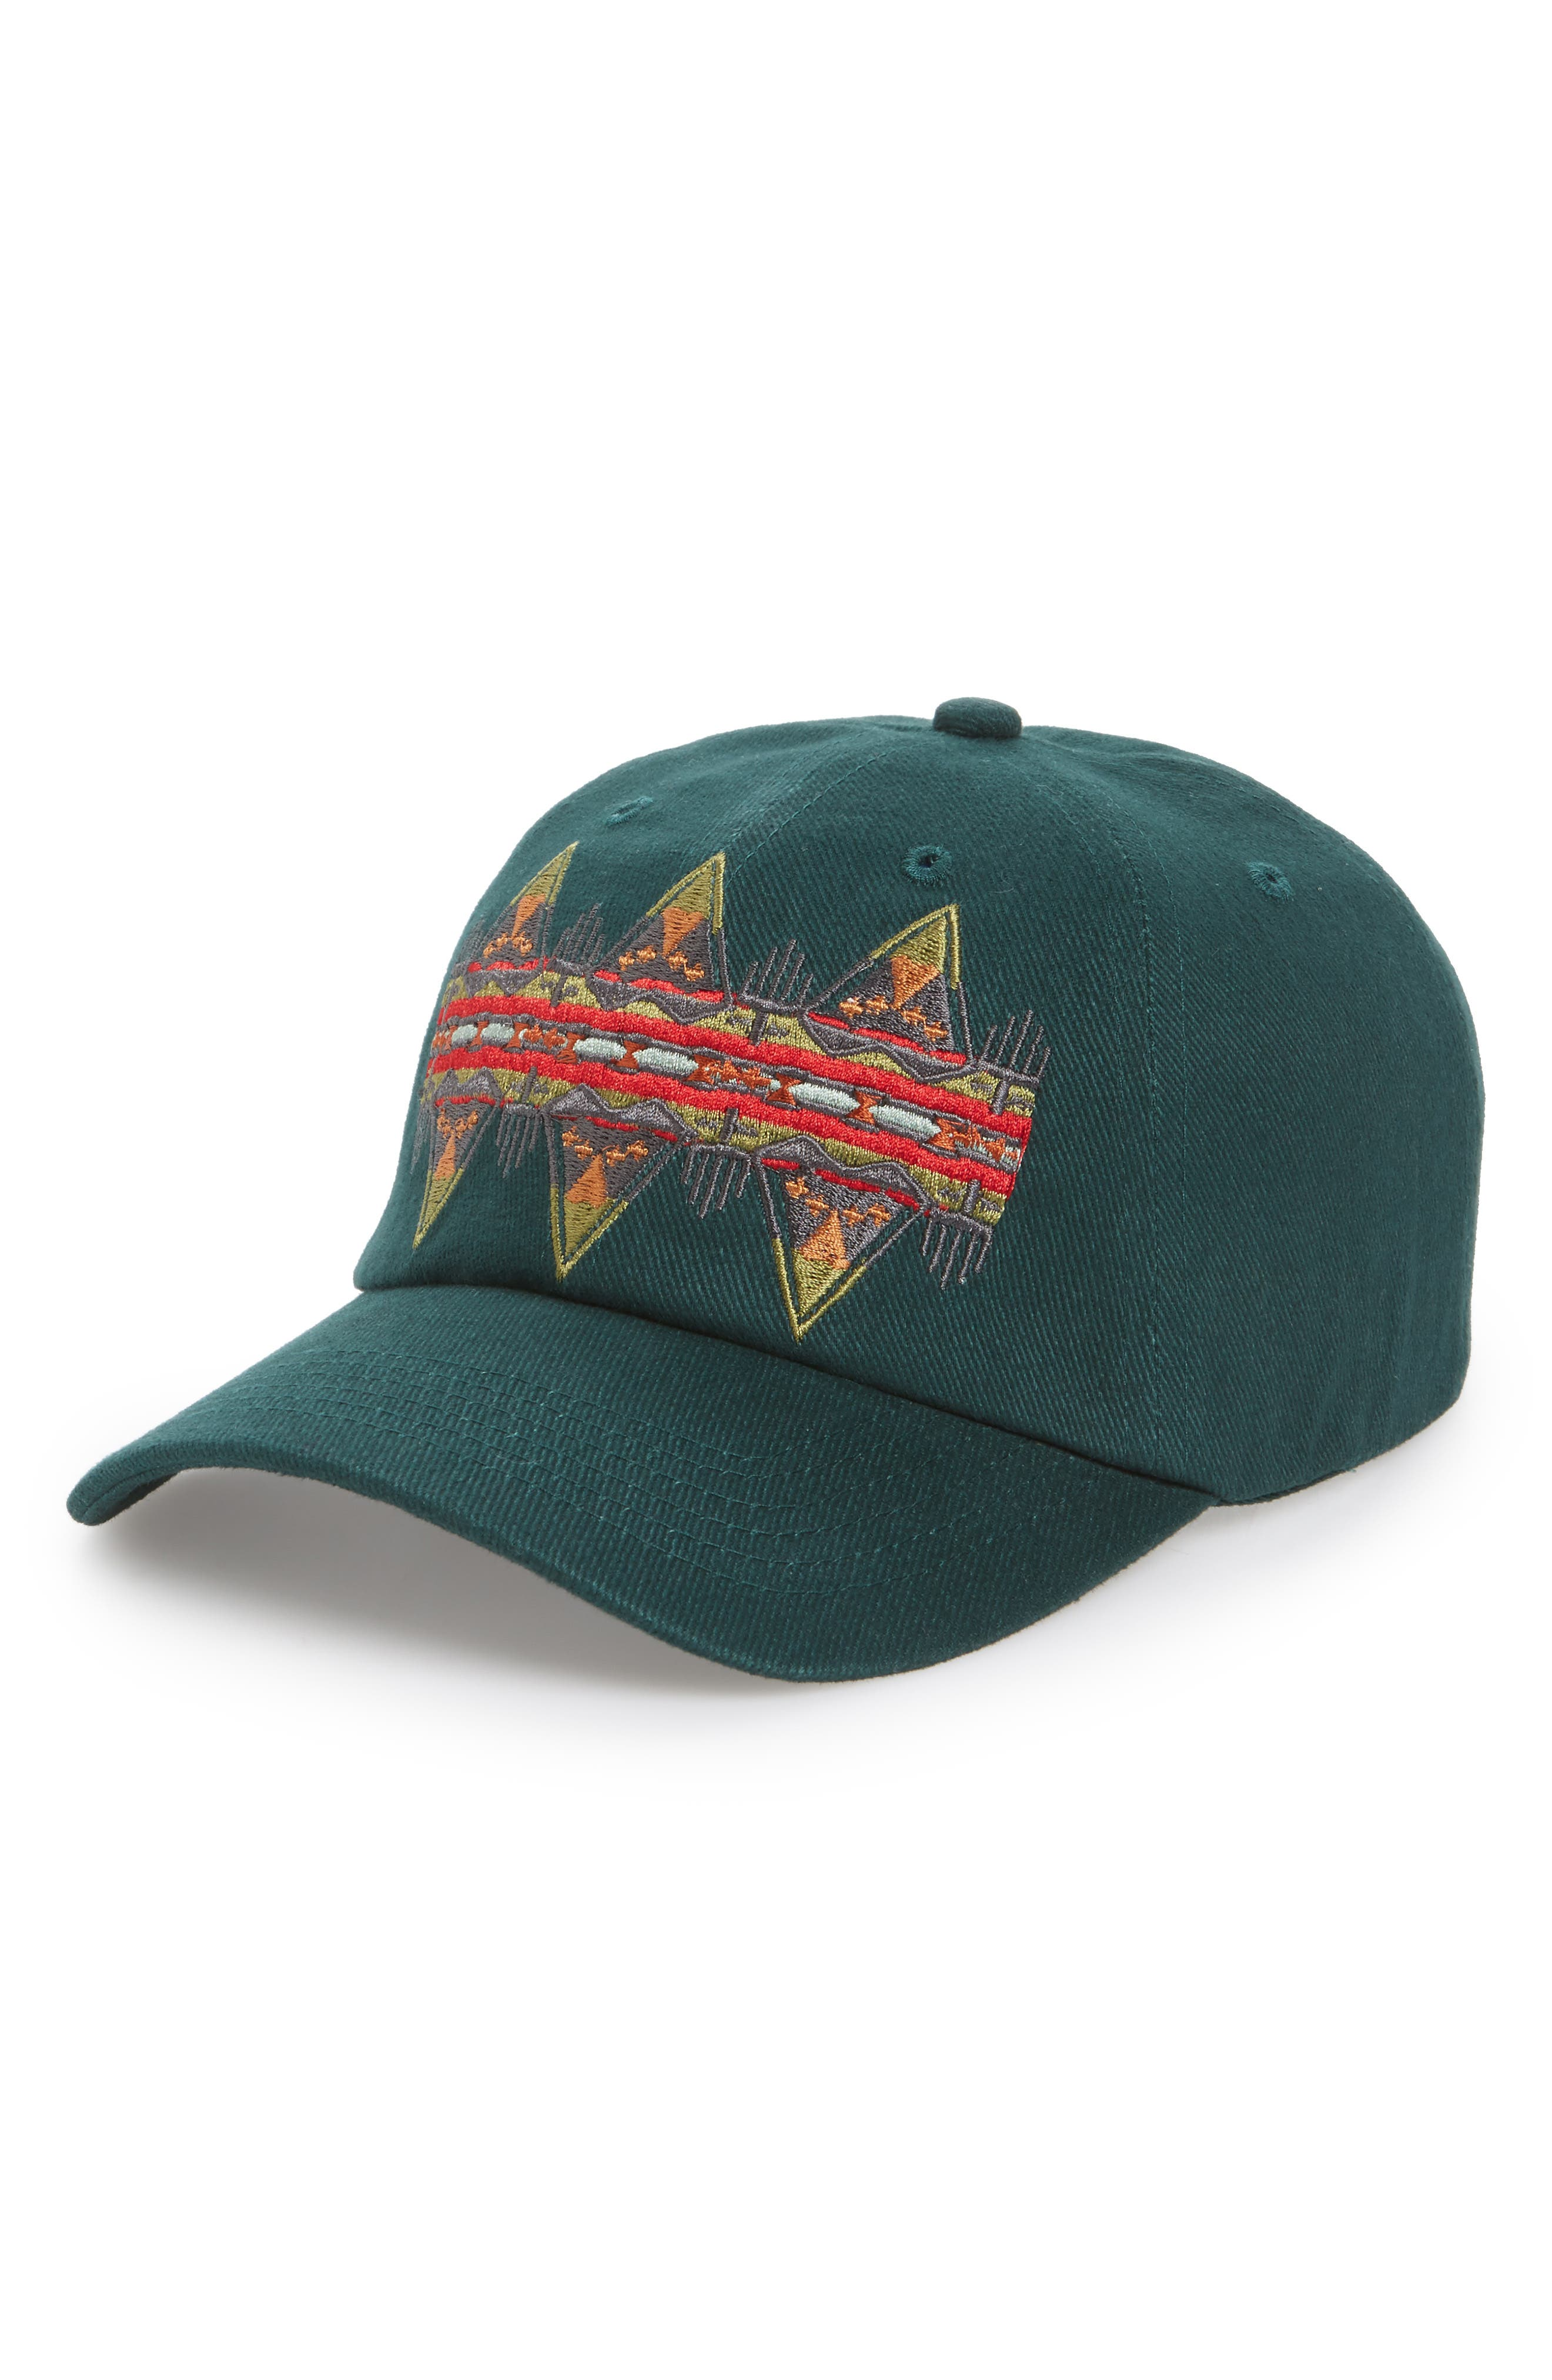 Embroidered Ball Cap,                         Main,                         color, Journey East Green